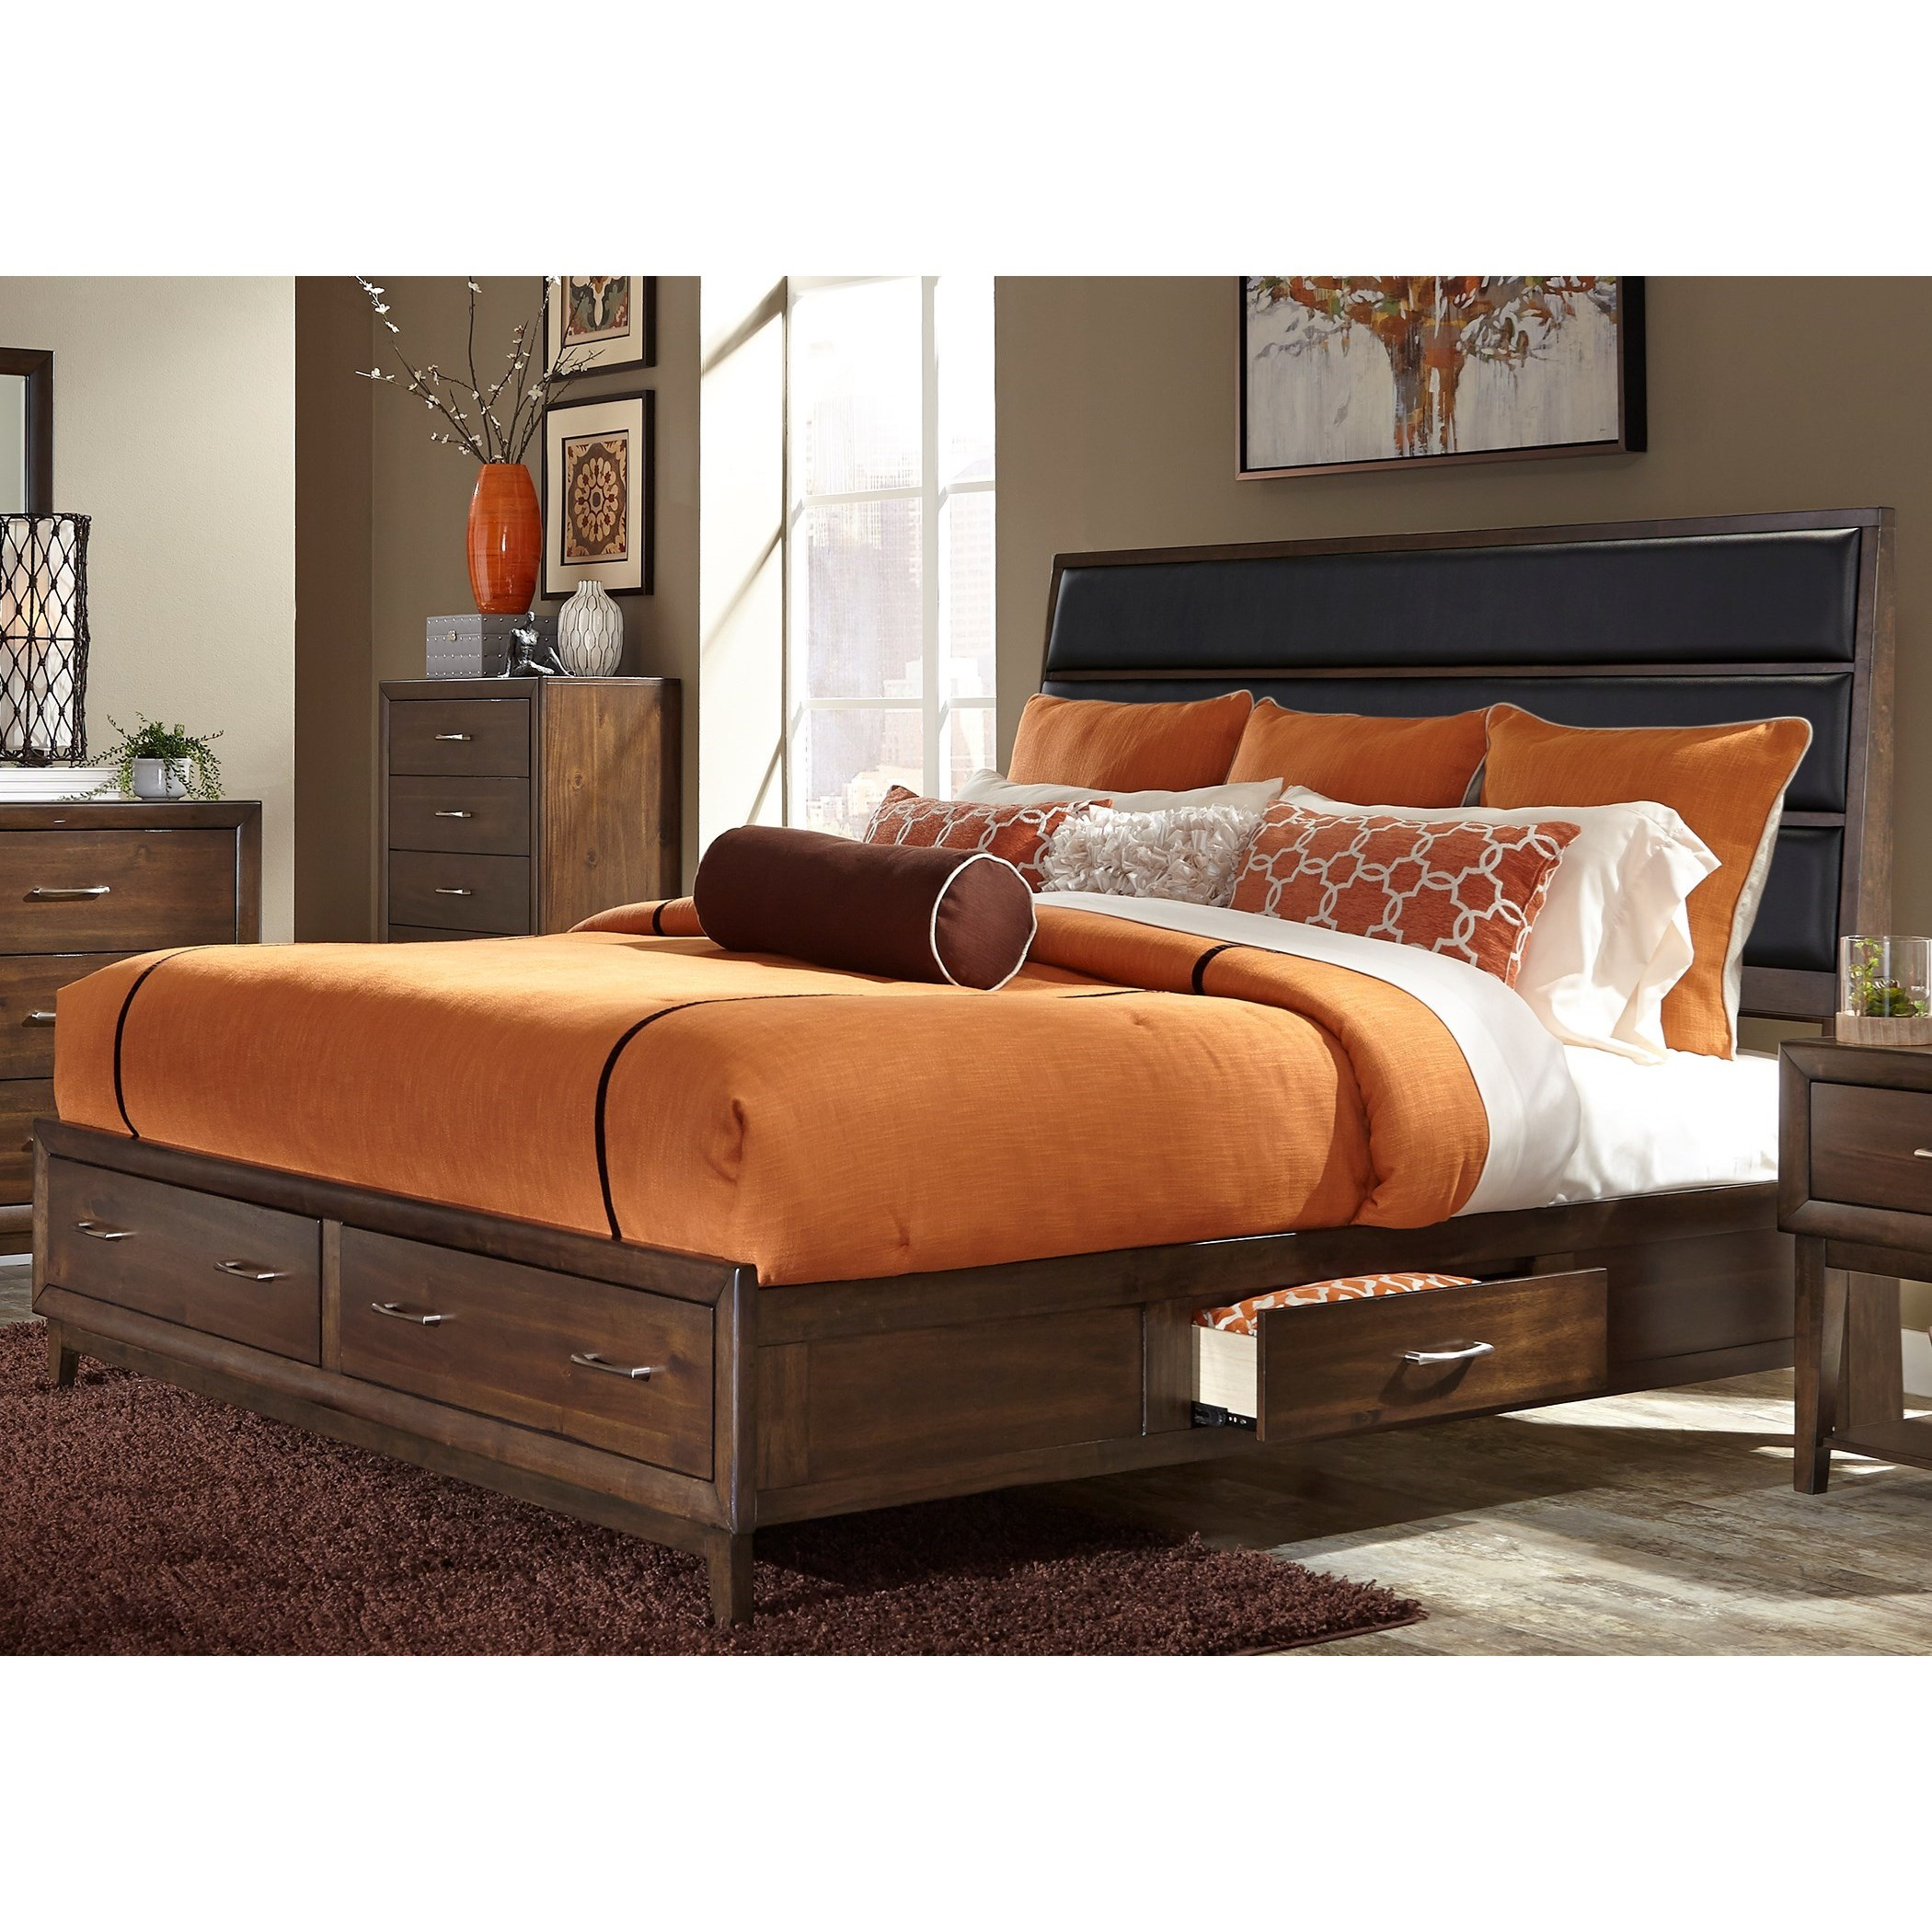 Liberty furniture hudson square bedroom 365 br kus king for Furniture 365 direct